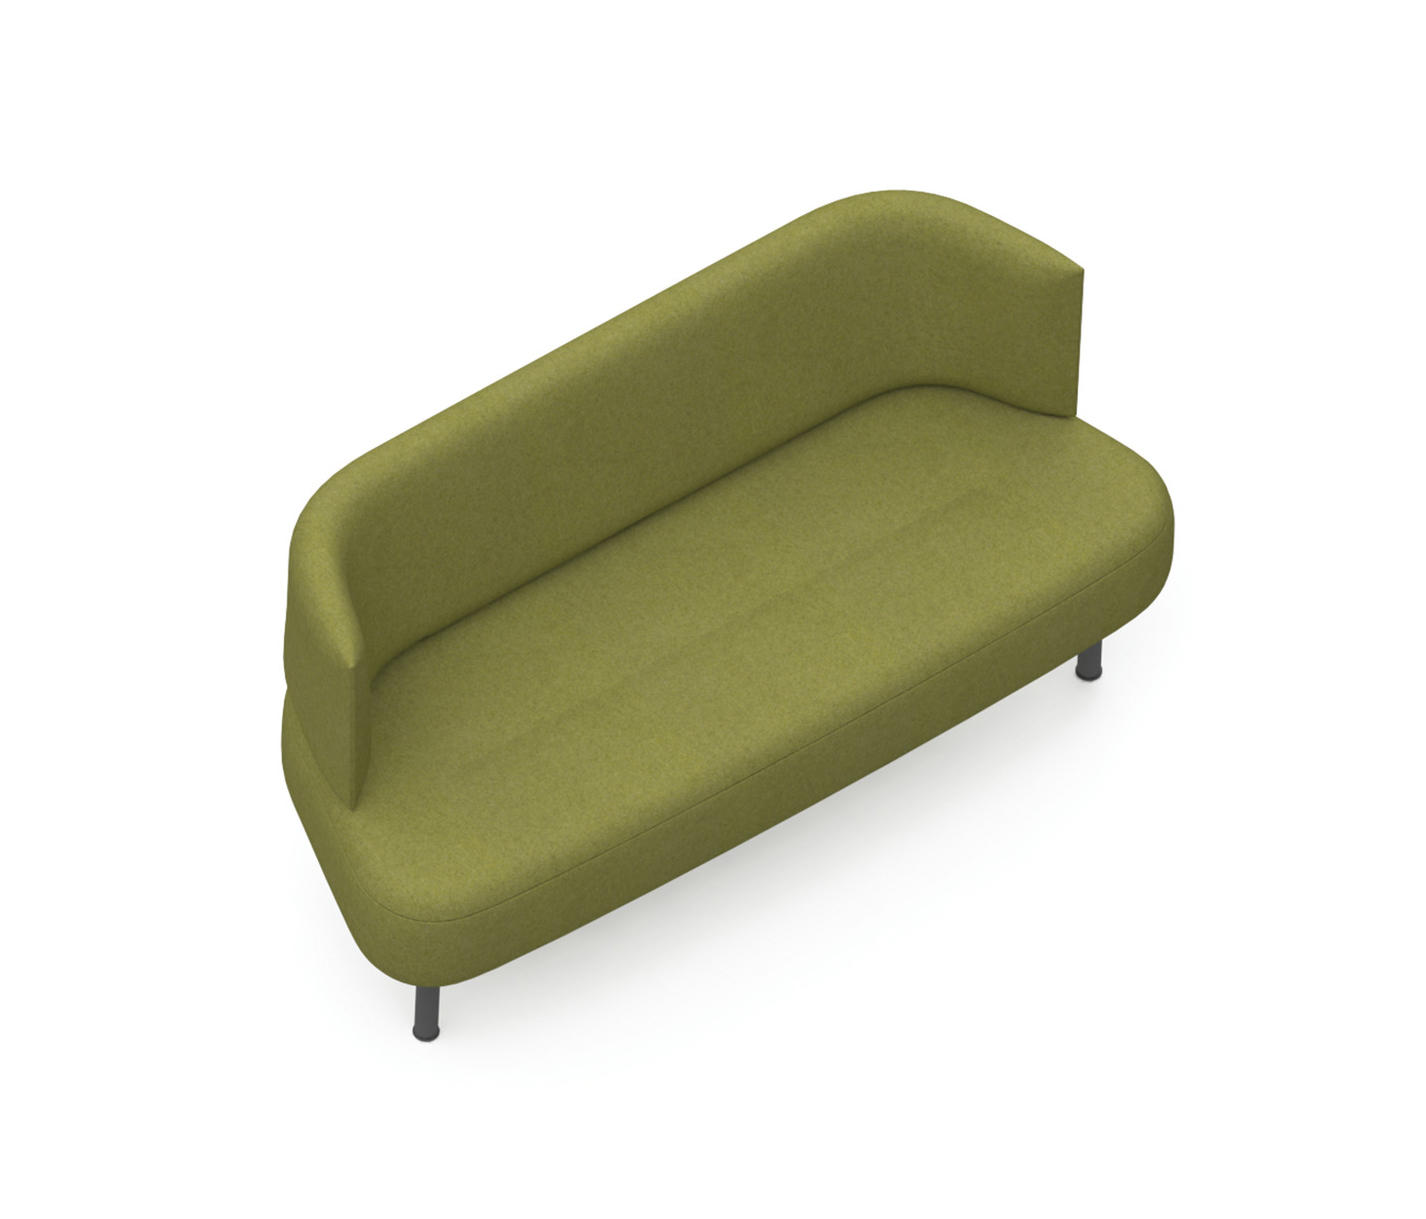 Zones In The Zone Sofas Benches From Teknion Architonic